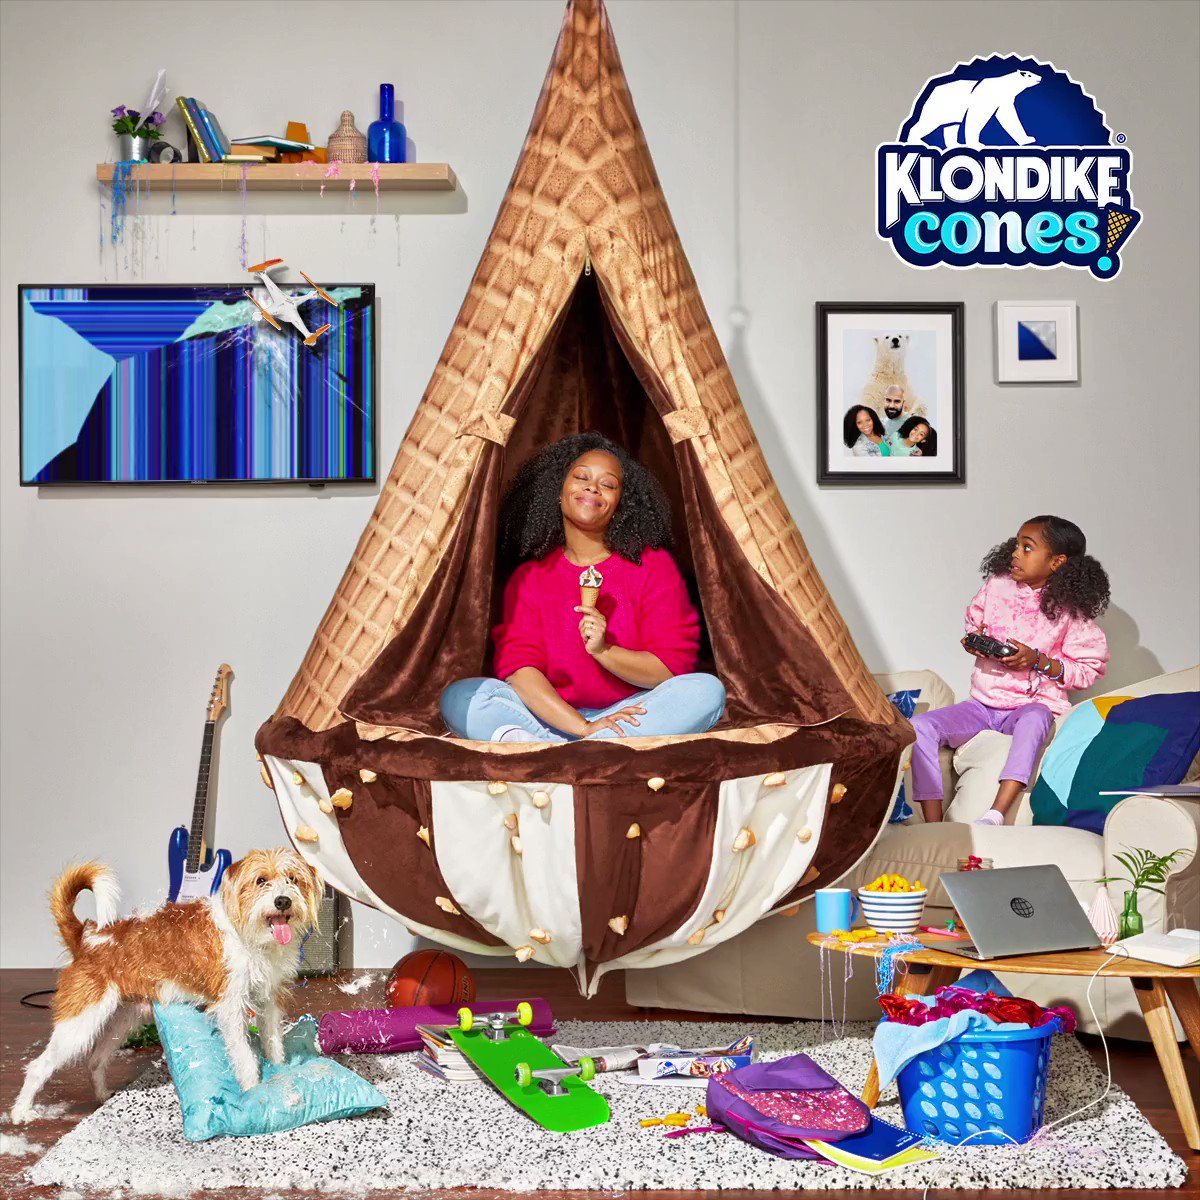 What would you do for a chance to win NEW Klondike Cones & your VERY OWN #KlondikeConeZone chair?😱  RT to enter & get reminded to see if you won on 3/11! #IWouldDoANYTHINGForAKlondikeConeZoneSweepstakes  No Purch Nec 50 US/DC 18+ Ends 1159PM ET 3/8 Rules: